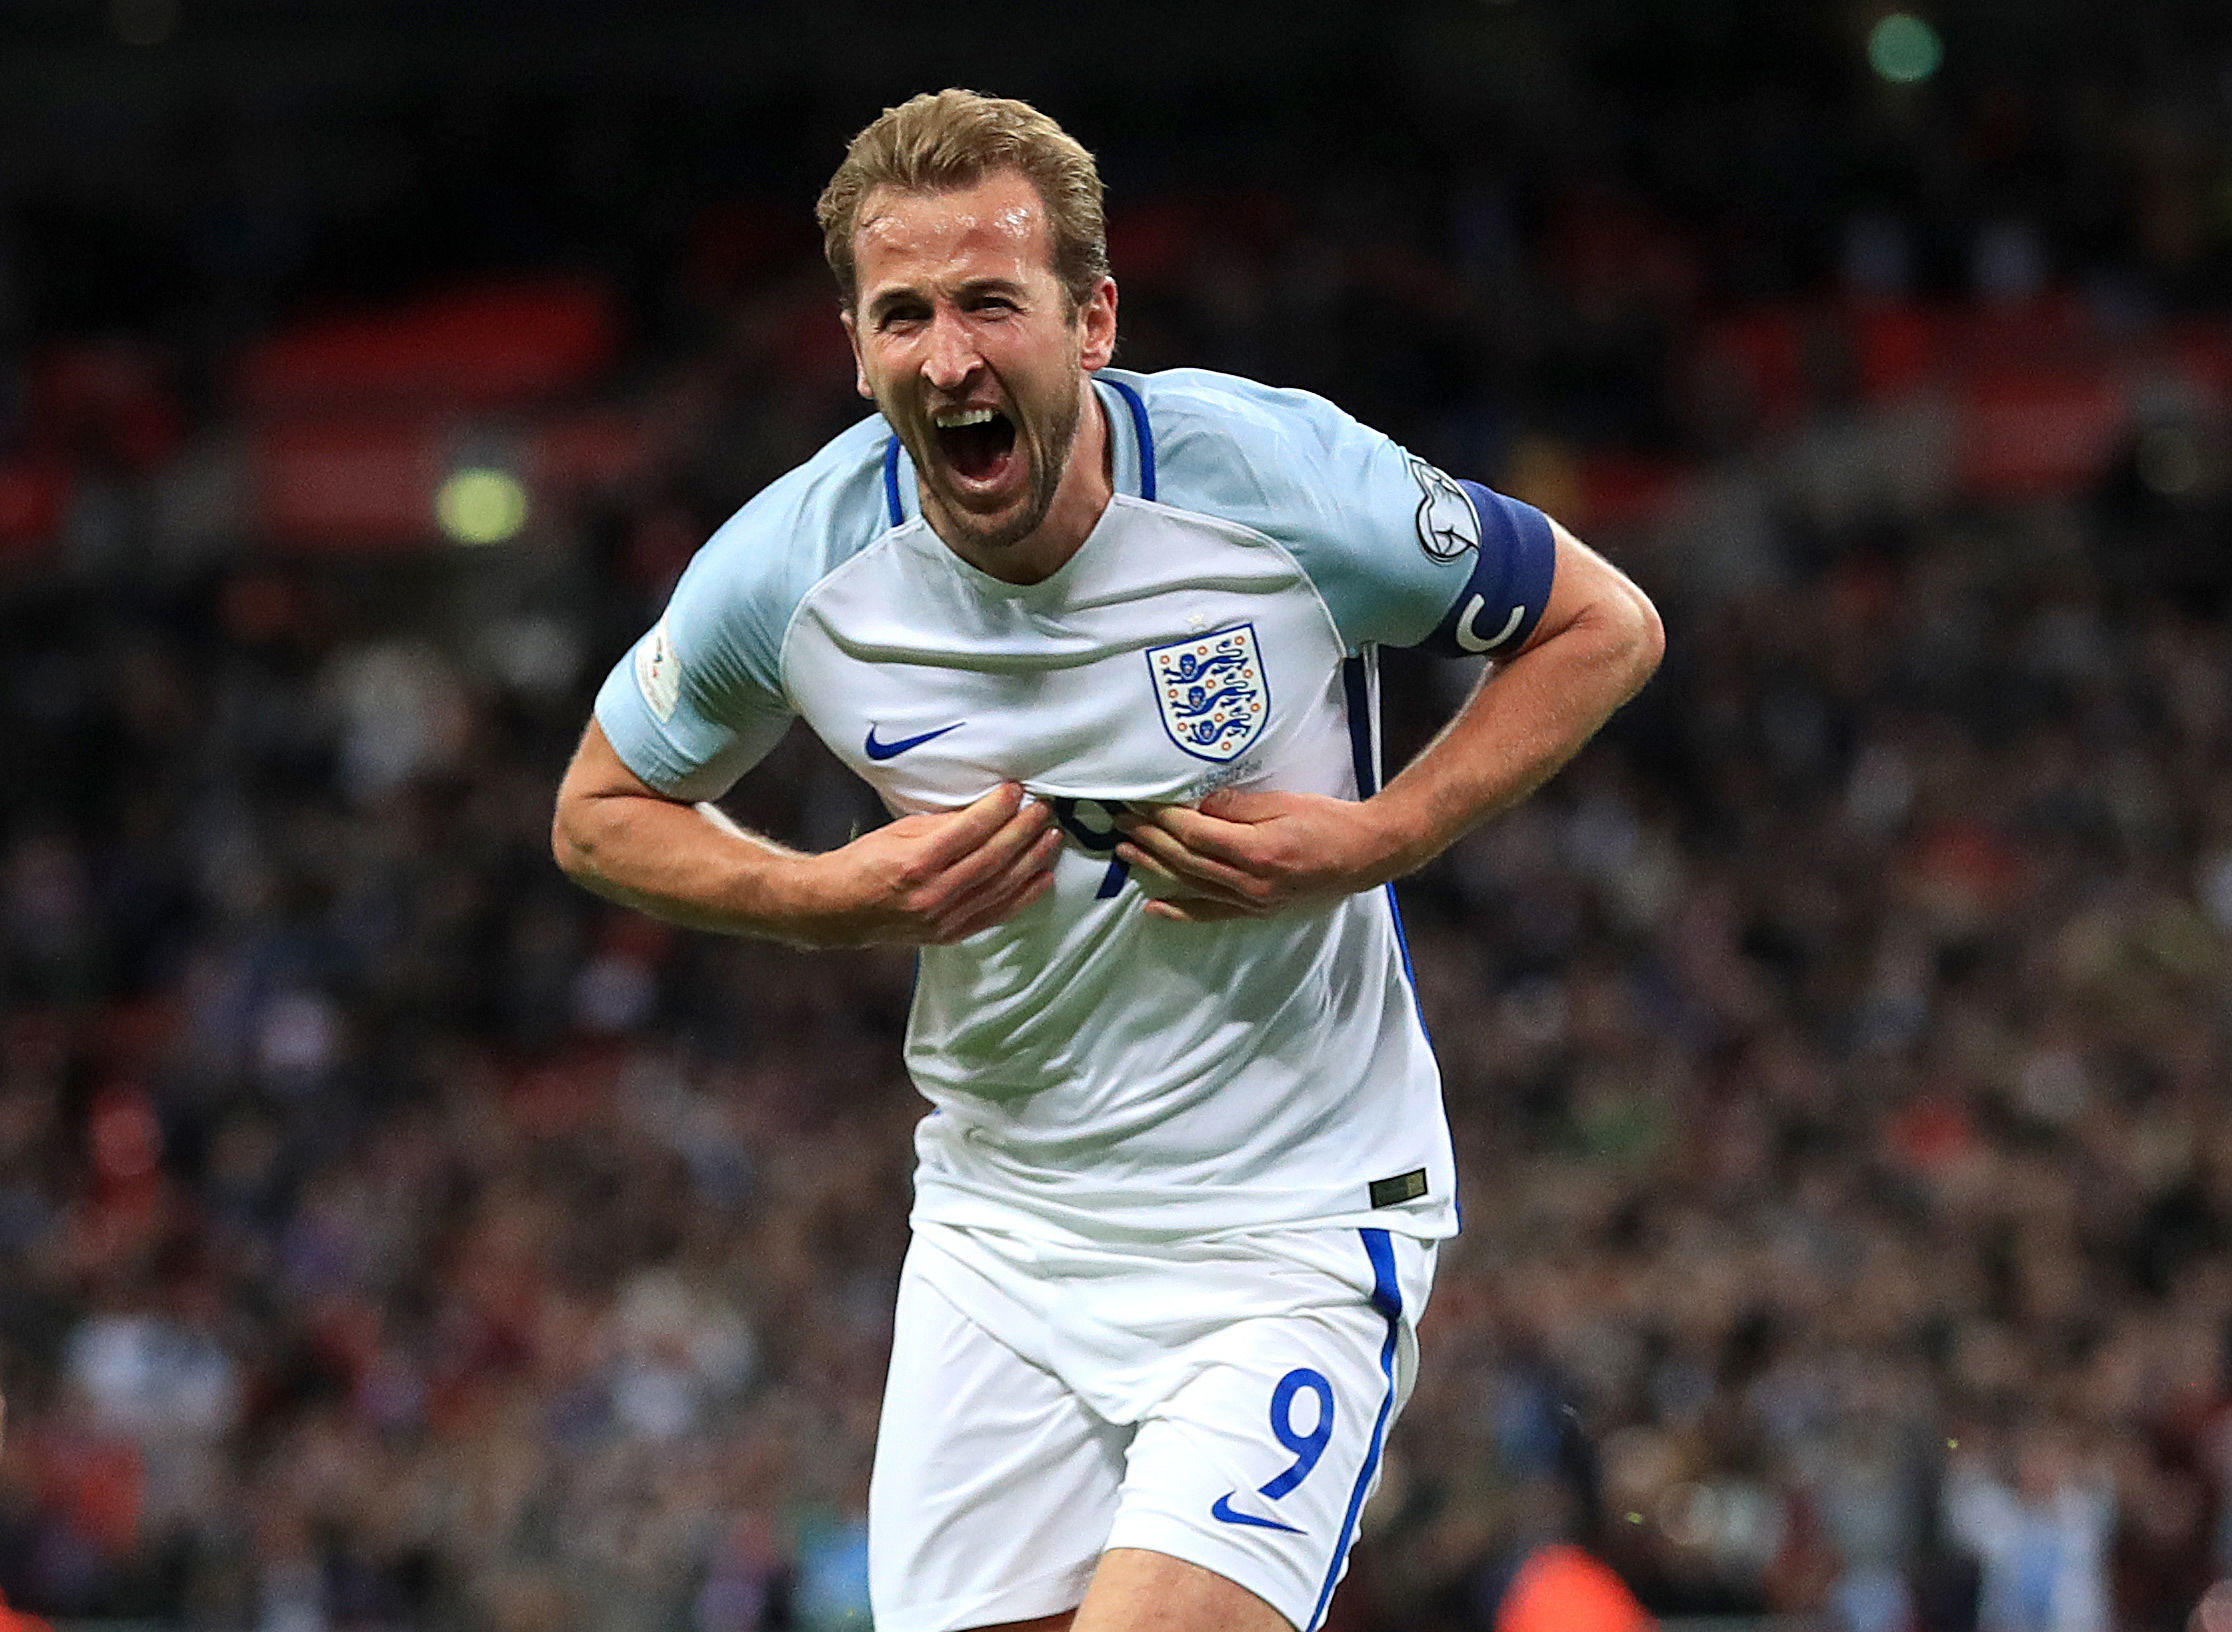 KEY MAN: England skipper Harry Kane is one to watch at the 2018 World Cup. Pic: PA Wire